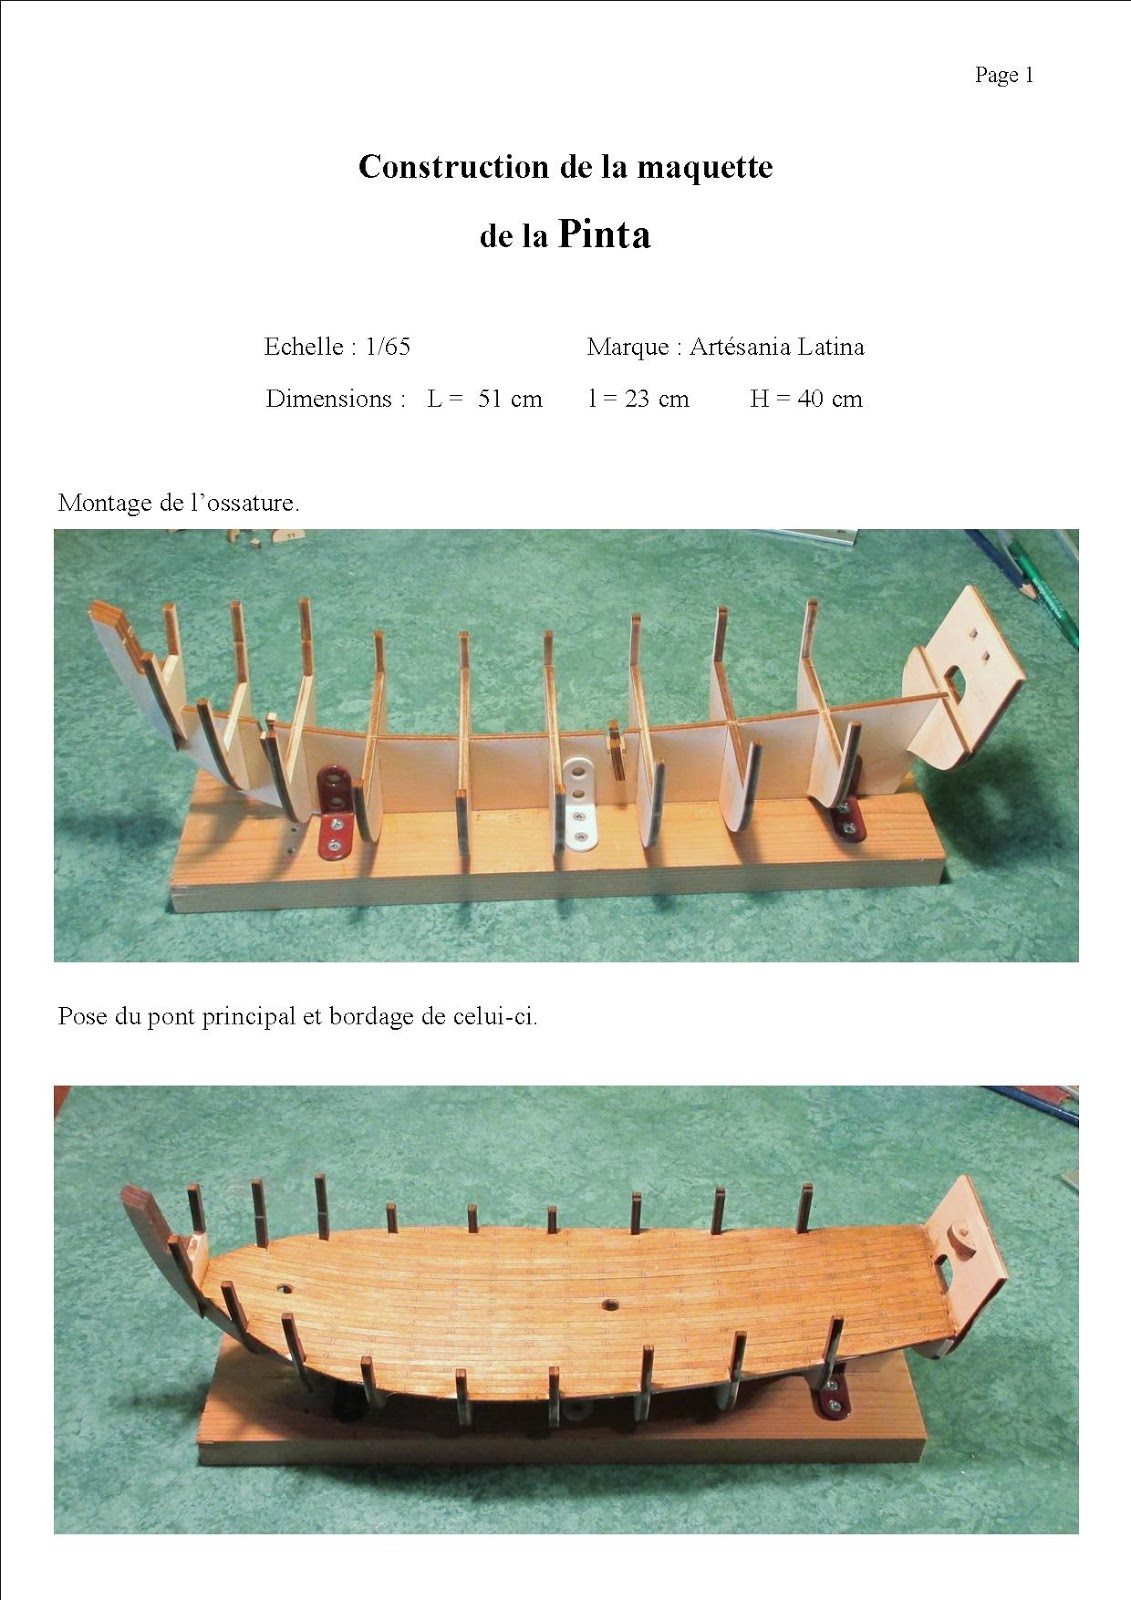 maquettes de bateaux en bois maquette de la pinta. Black Bedroom Furniture Sets. Home Design Ideas